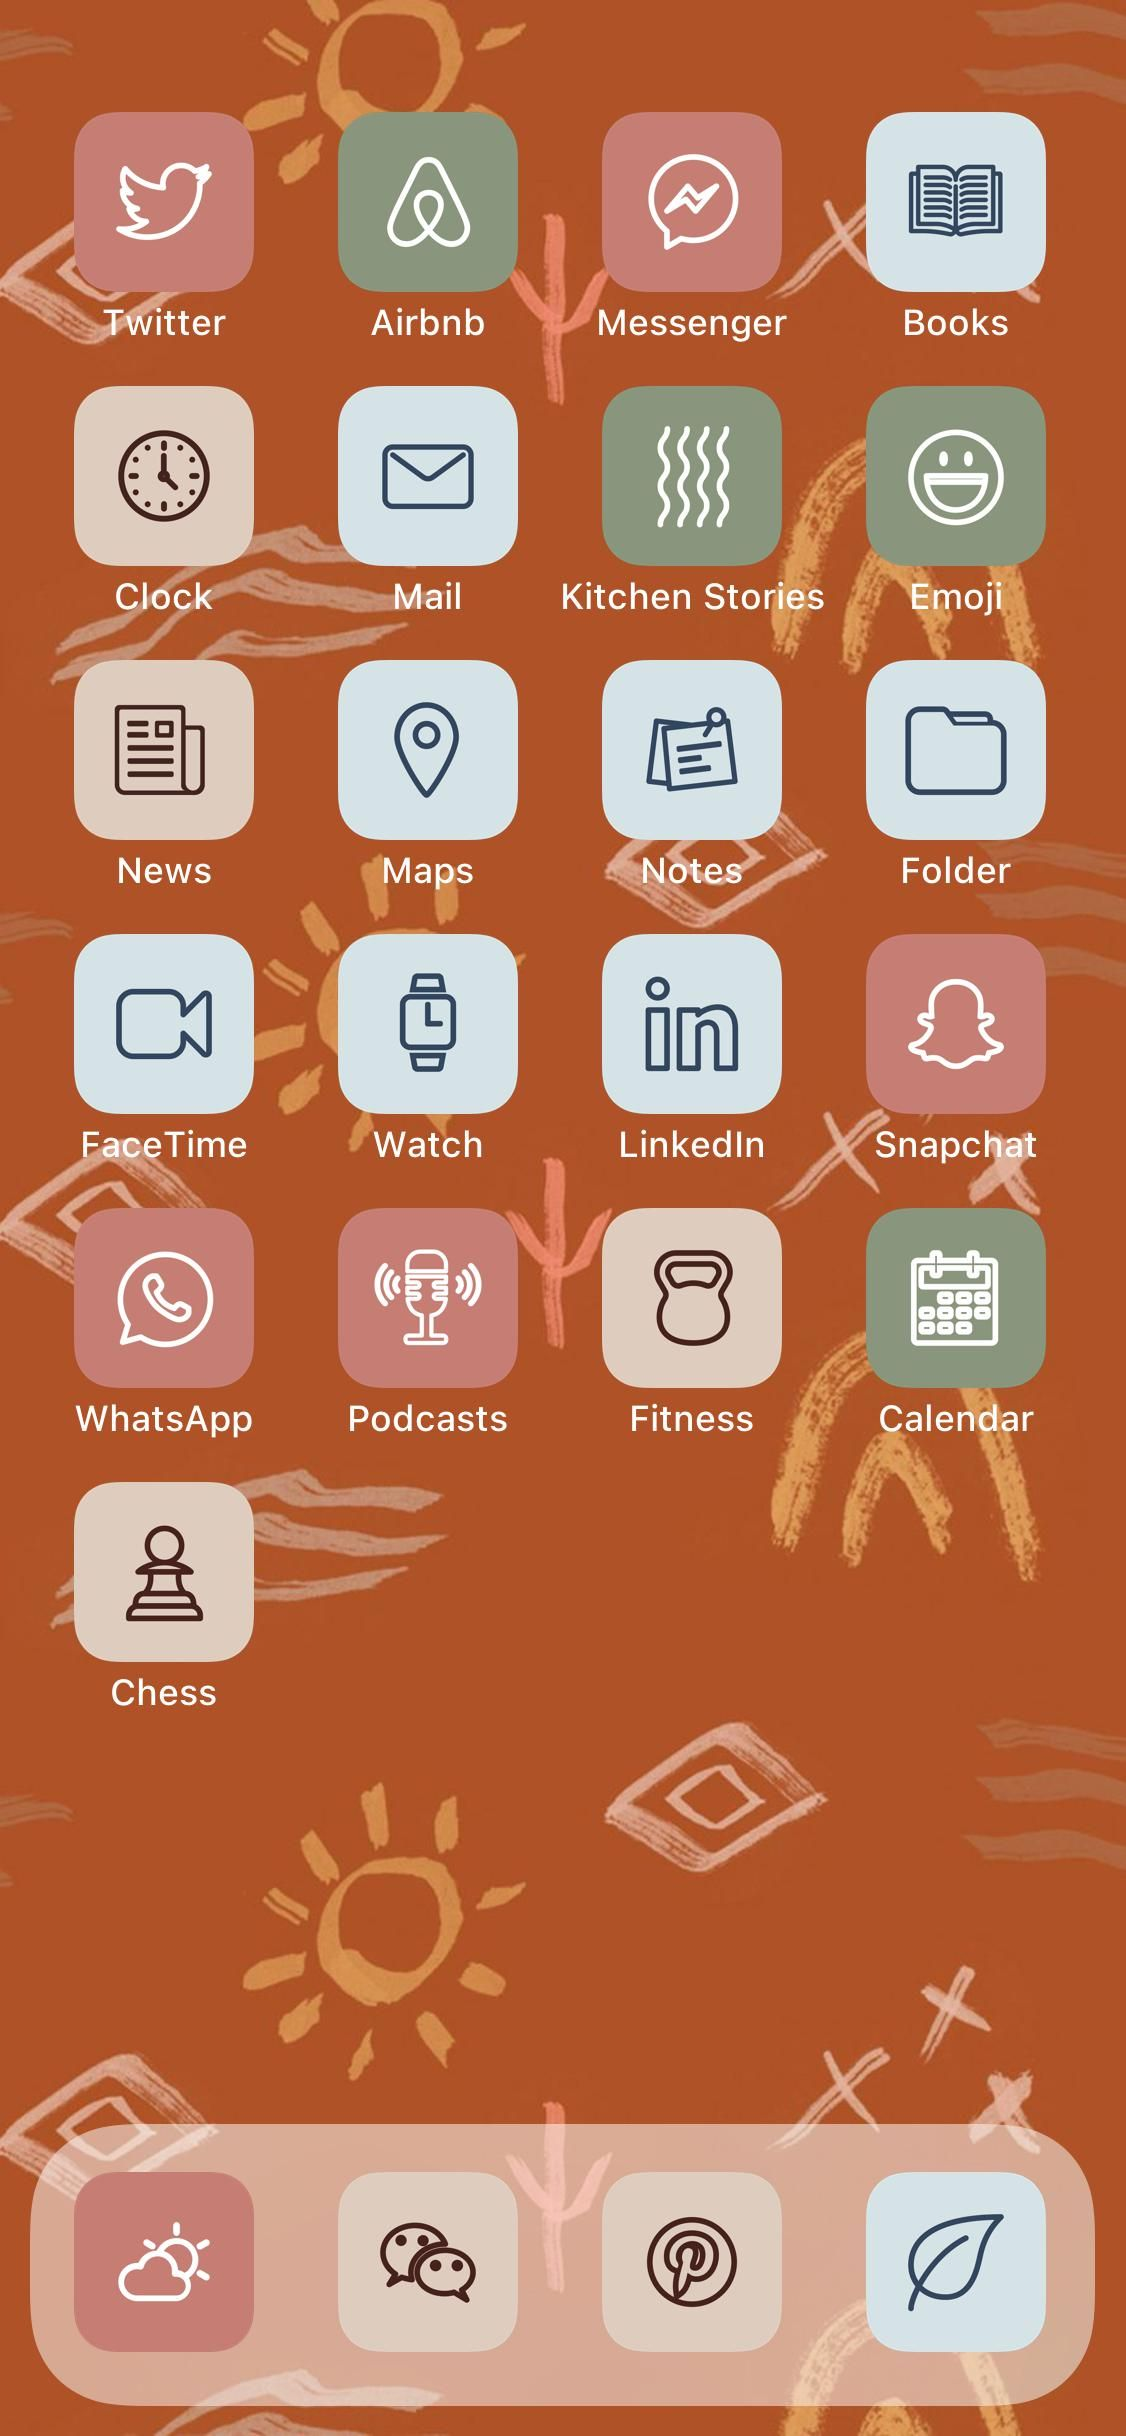 2 000 Boho Aesthetic Ios 14 App Icons Pack Natural Pastel Elegant Theme For Iphone And Iphone Home Screen Shortcuts App Covers Bundle App Icon App Covers Printable Calendar